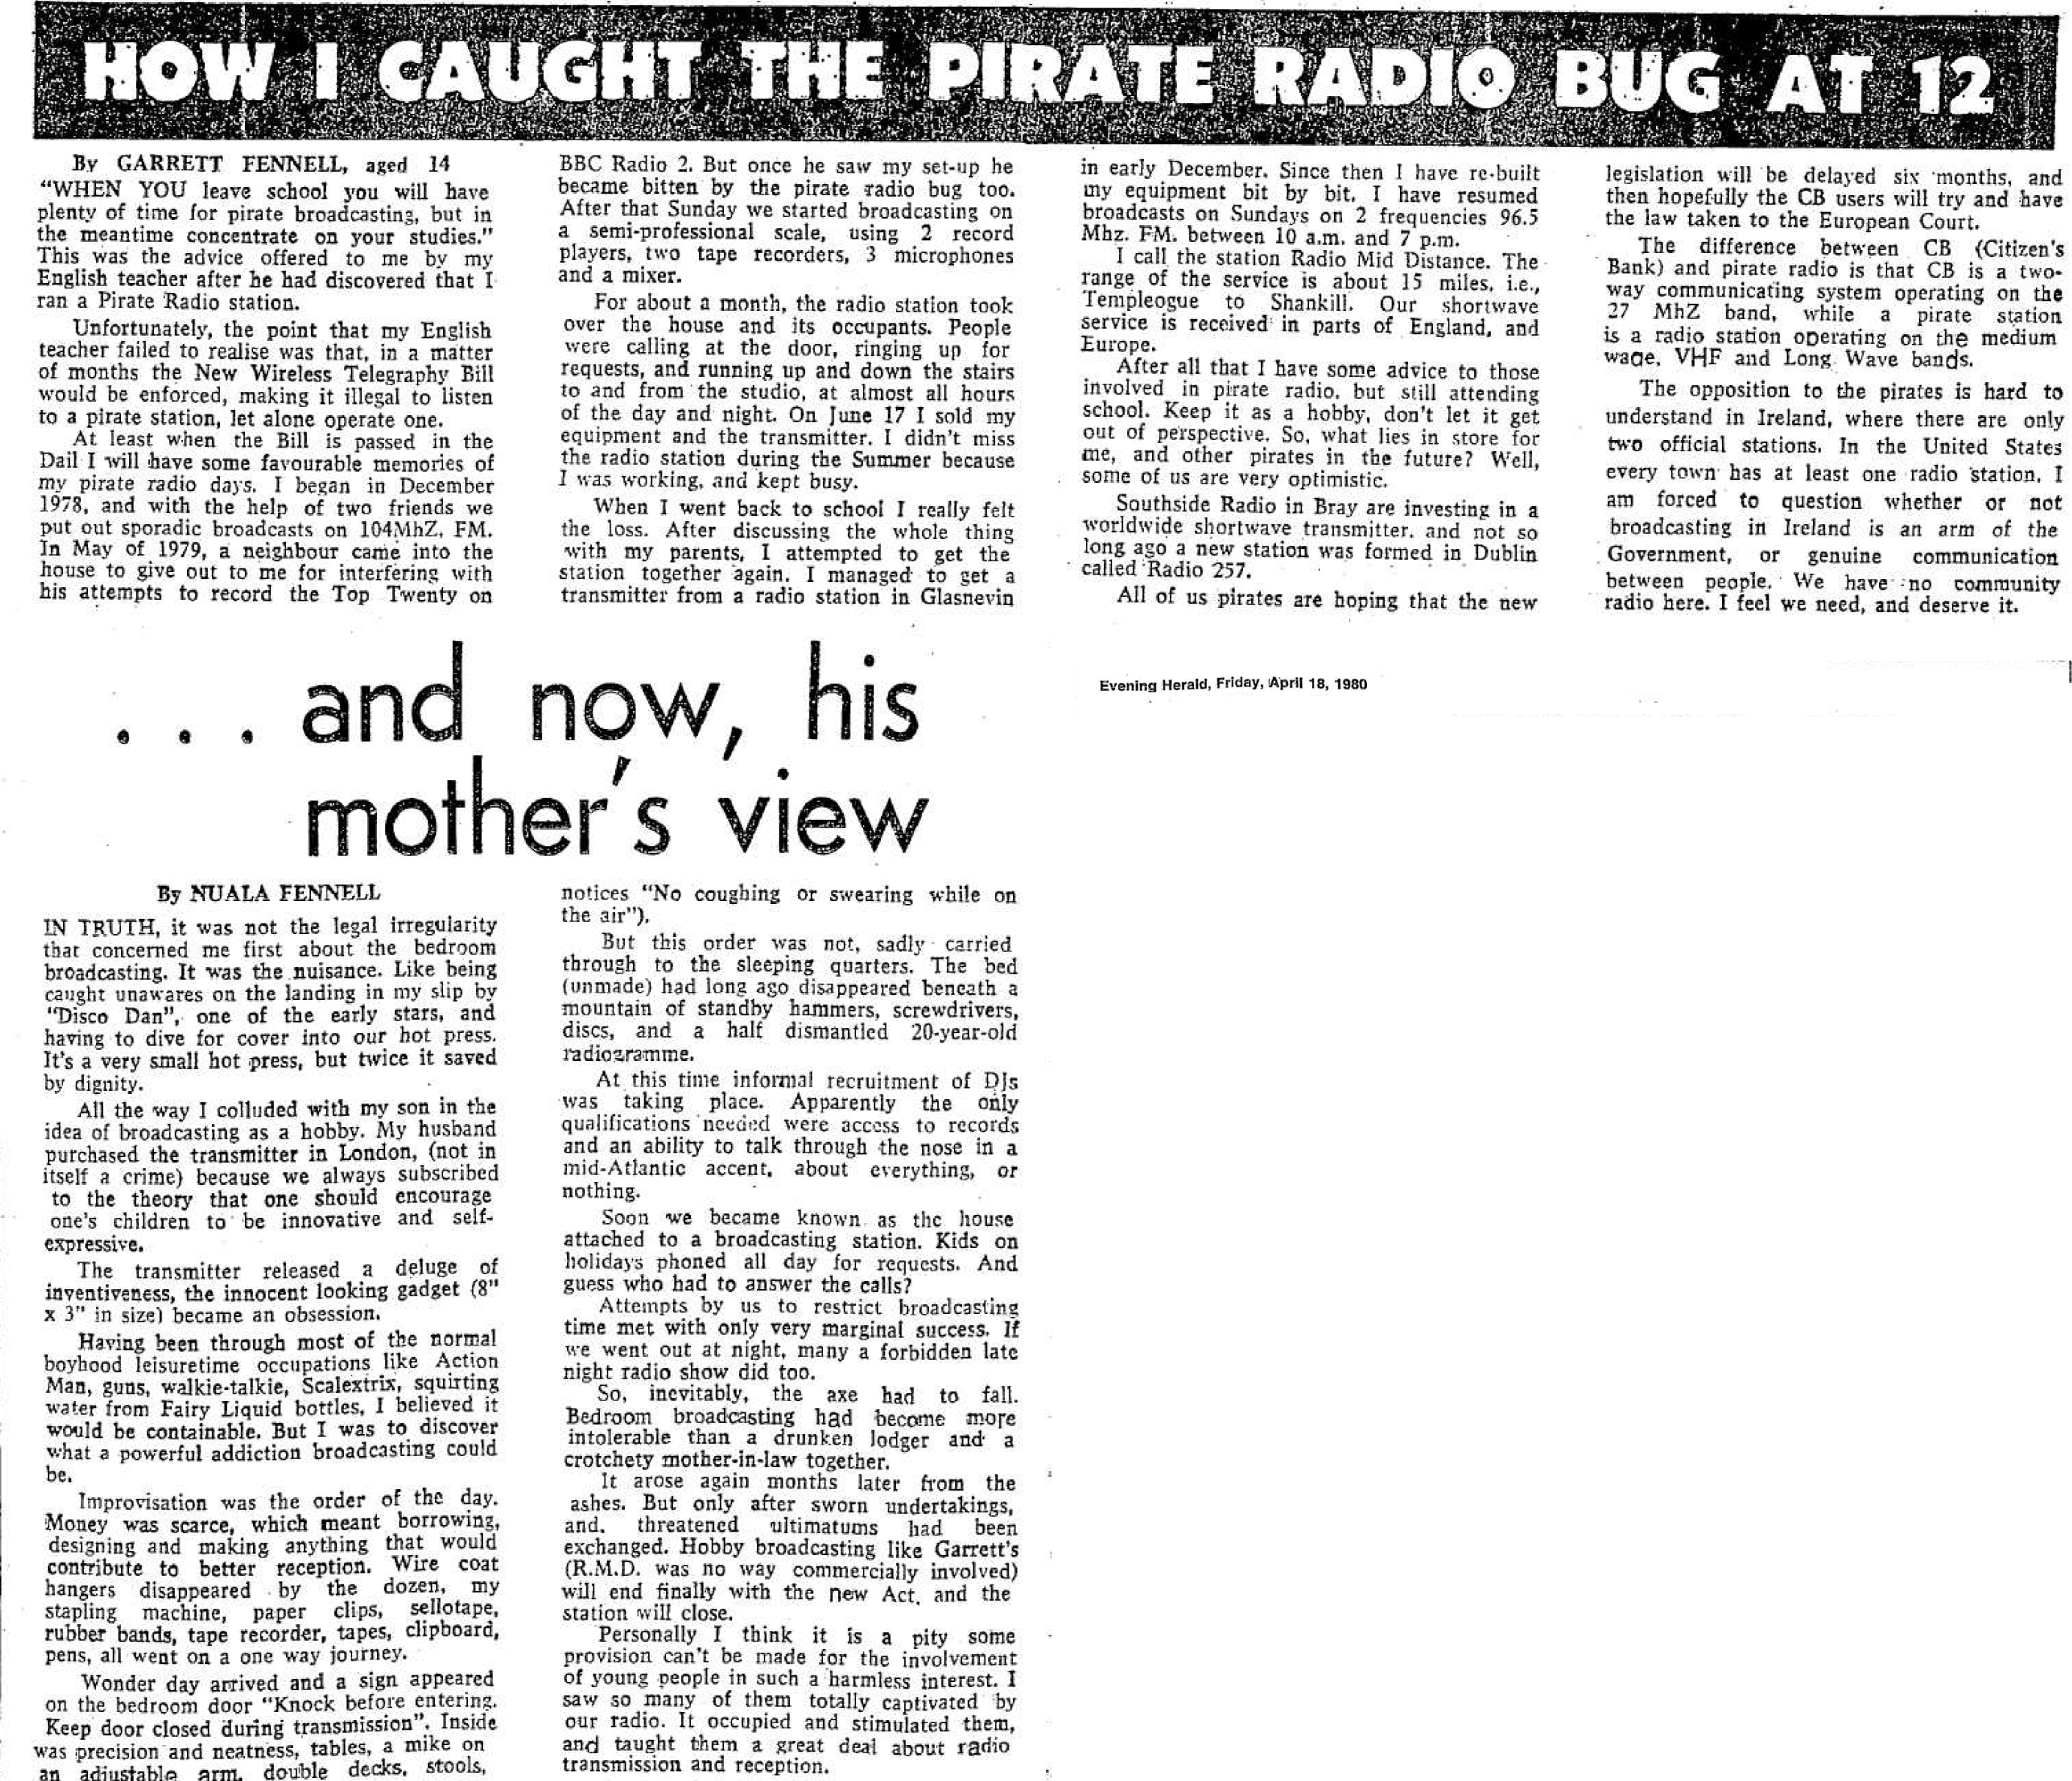 How I caught the pirate radio bug at 12 was a newspaper headline from The Evening Herald dated April 16th 1980